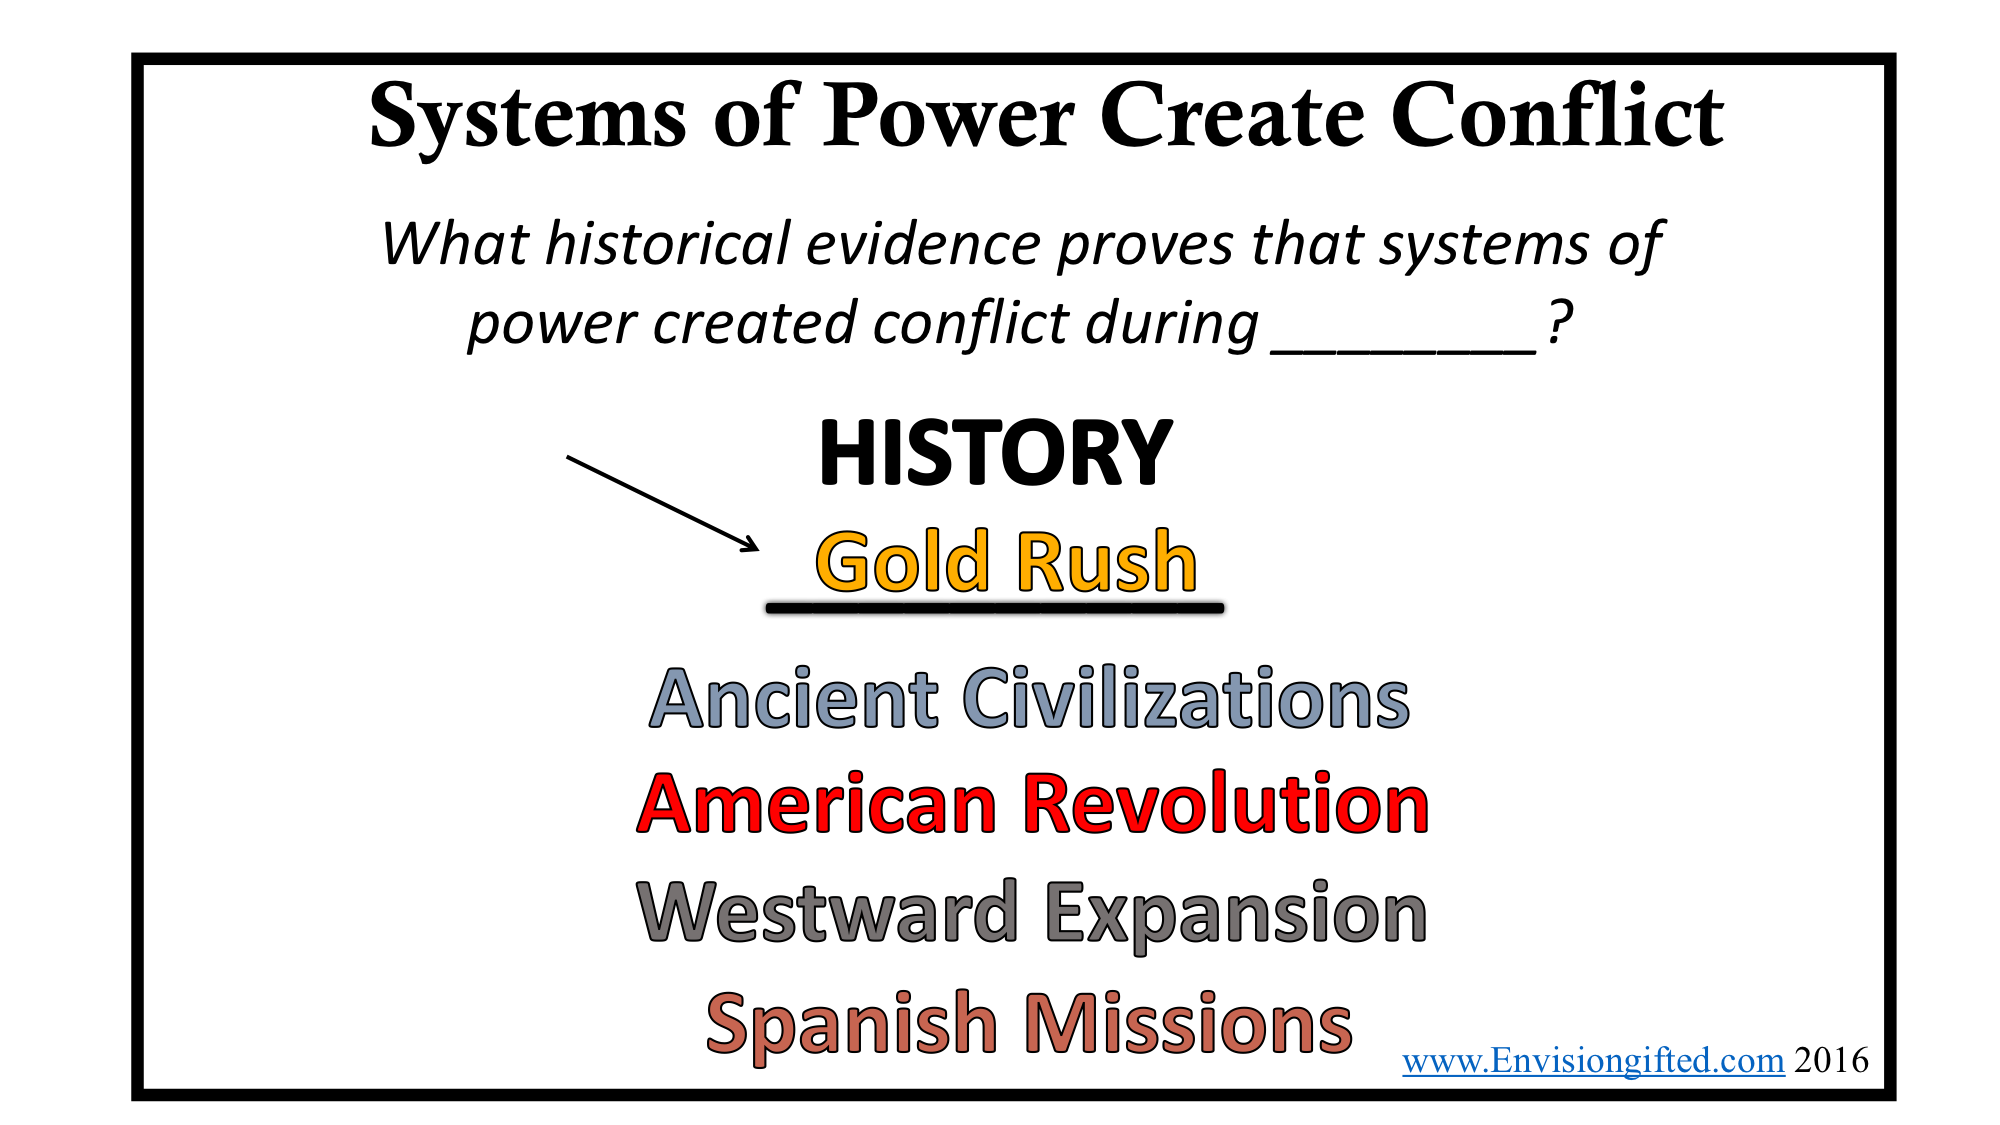 Envision Gifted. Systems-of-power-history